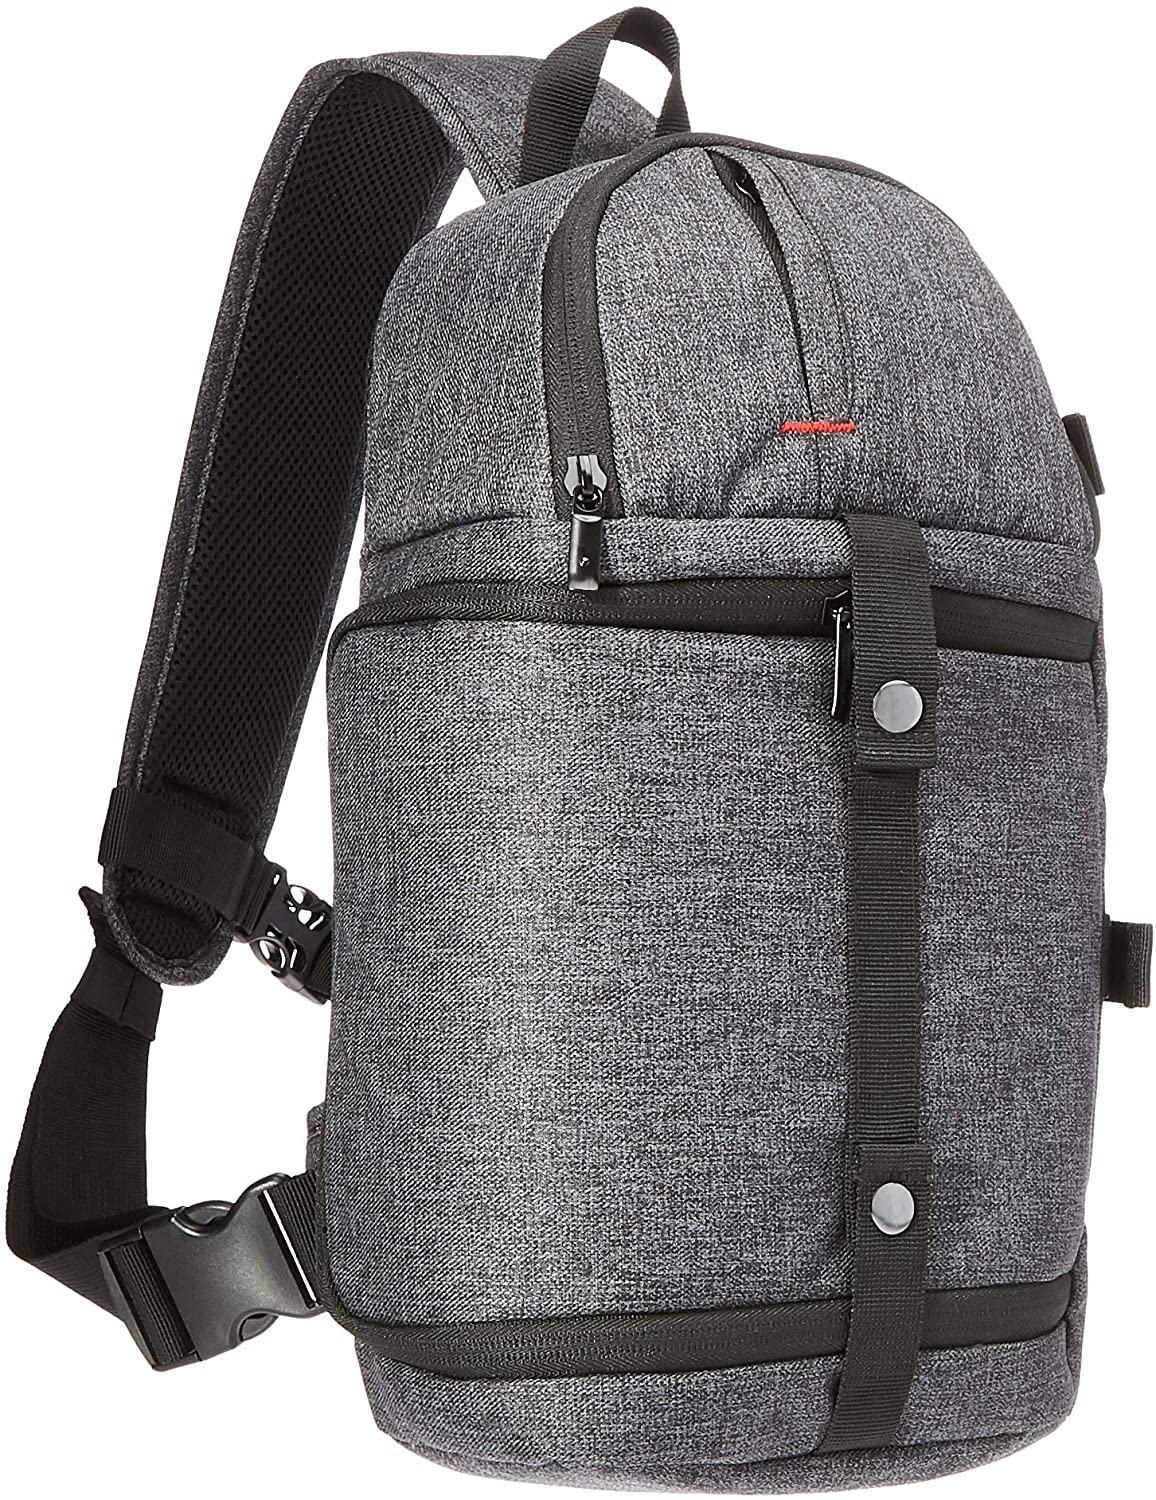 AmazonBasics Camera Sling with Adjustable Cross-Body Strap (High Density Water-Resistant 840D Polyester) - Ash Gray